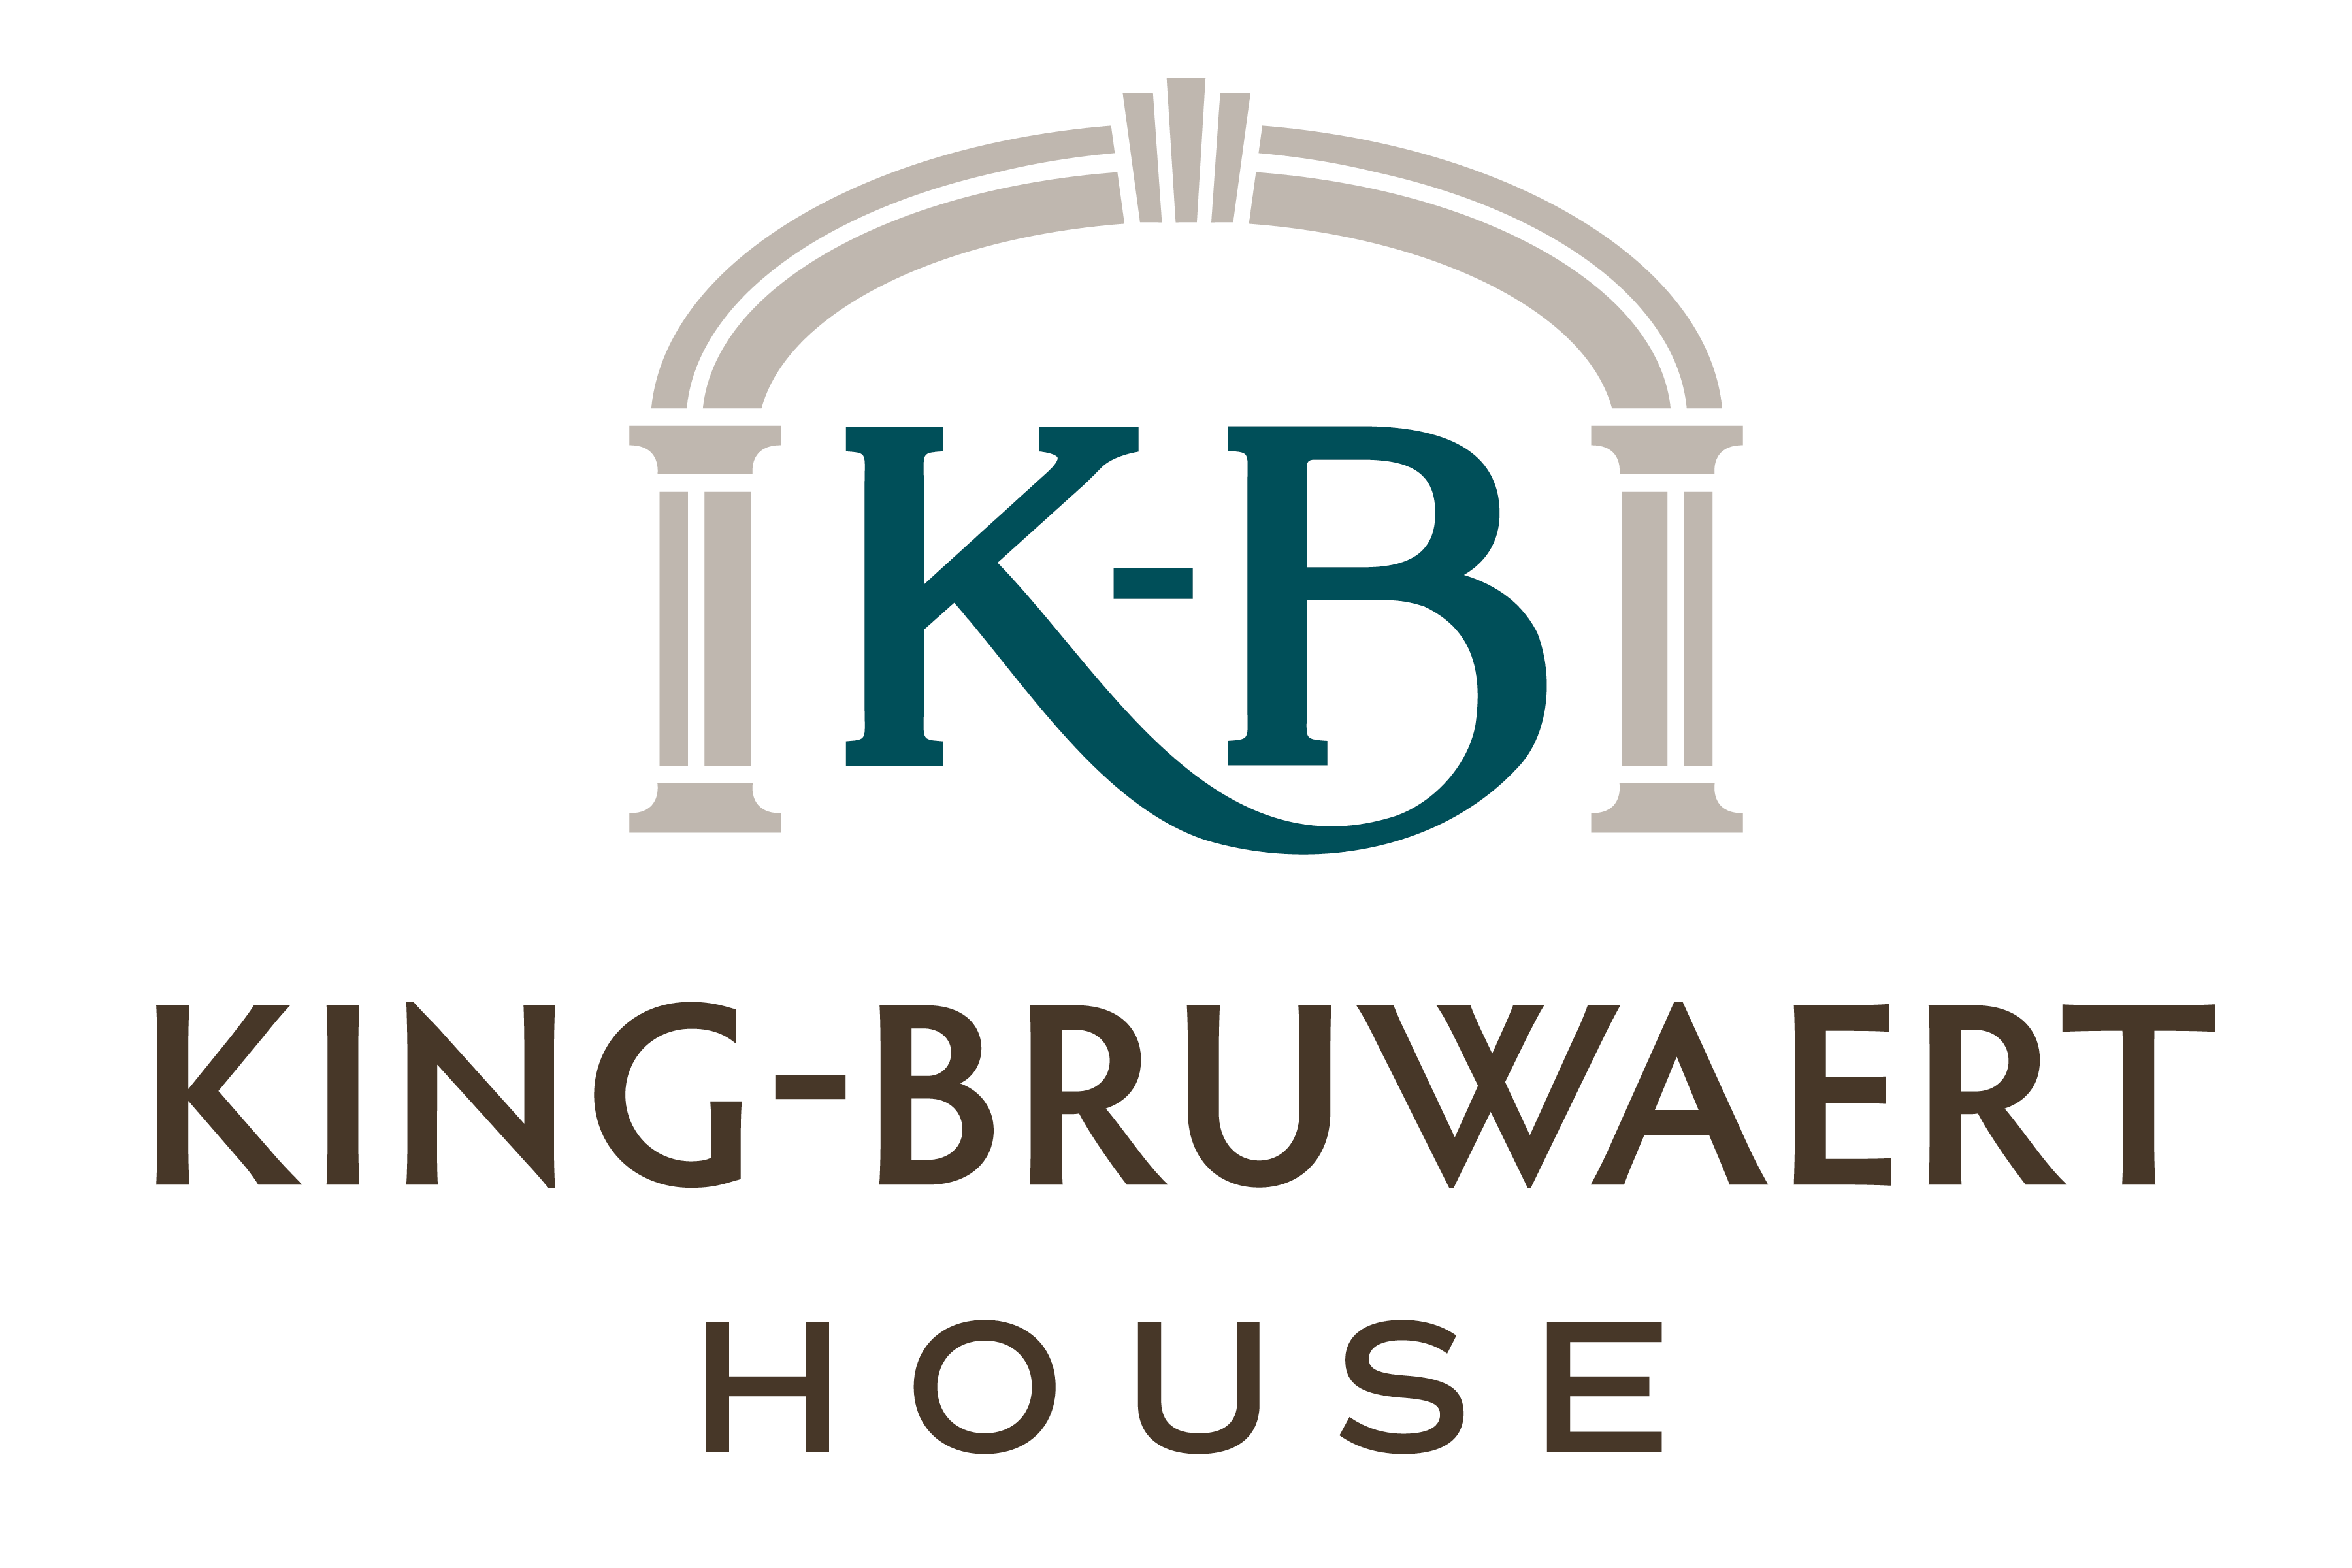 King-Bruwaert House